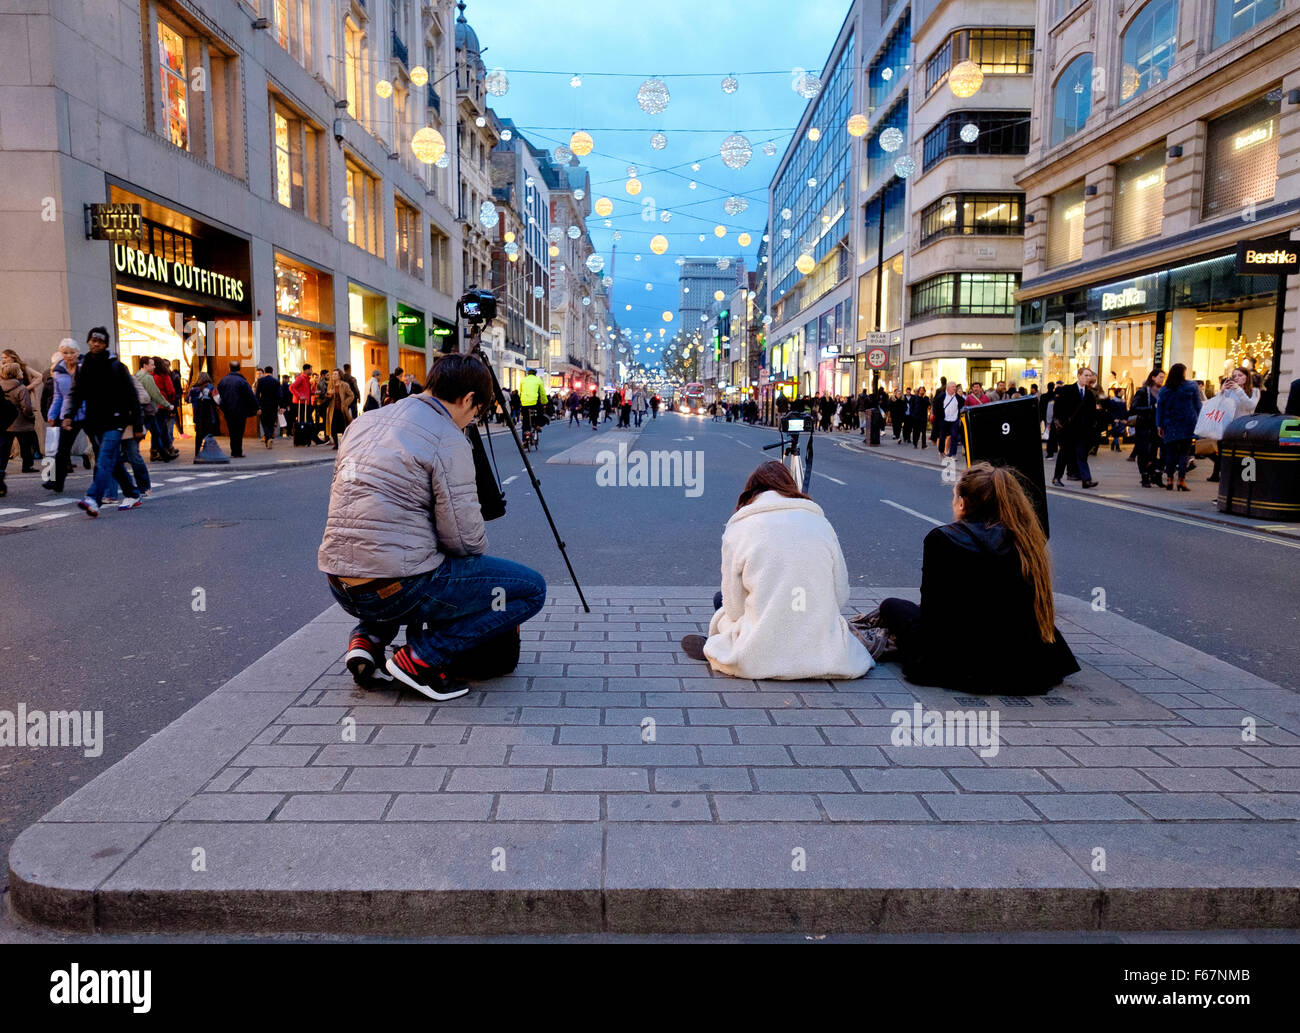 Oxford Street, London, 12 November 2015: Photographers in the centre of Oxford Street using tripods to take photos - Stock Image